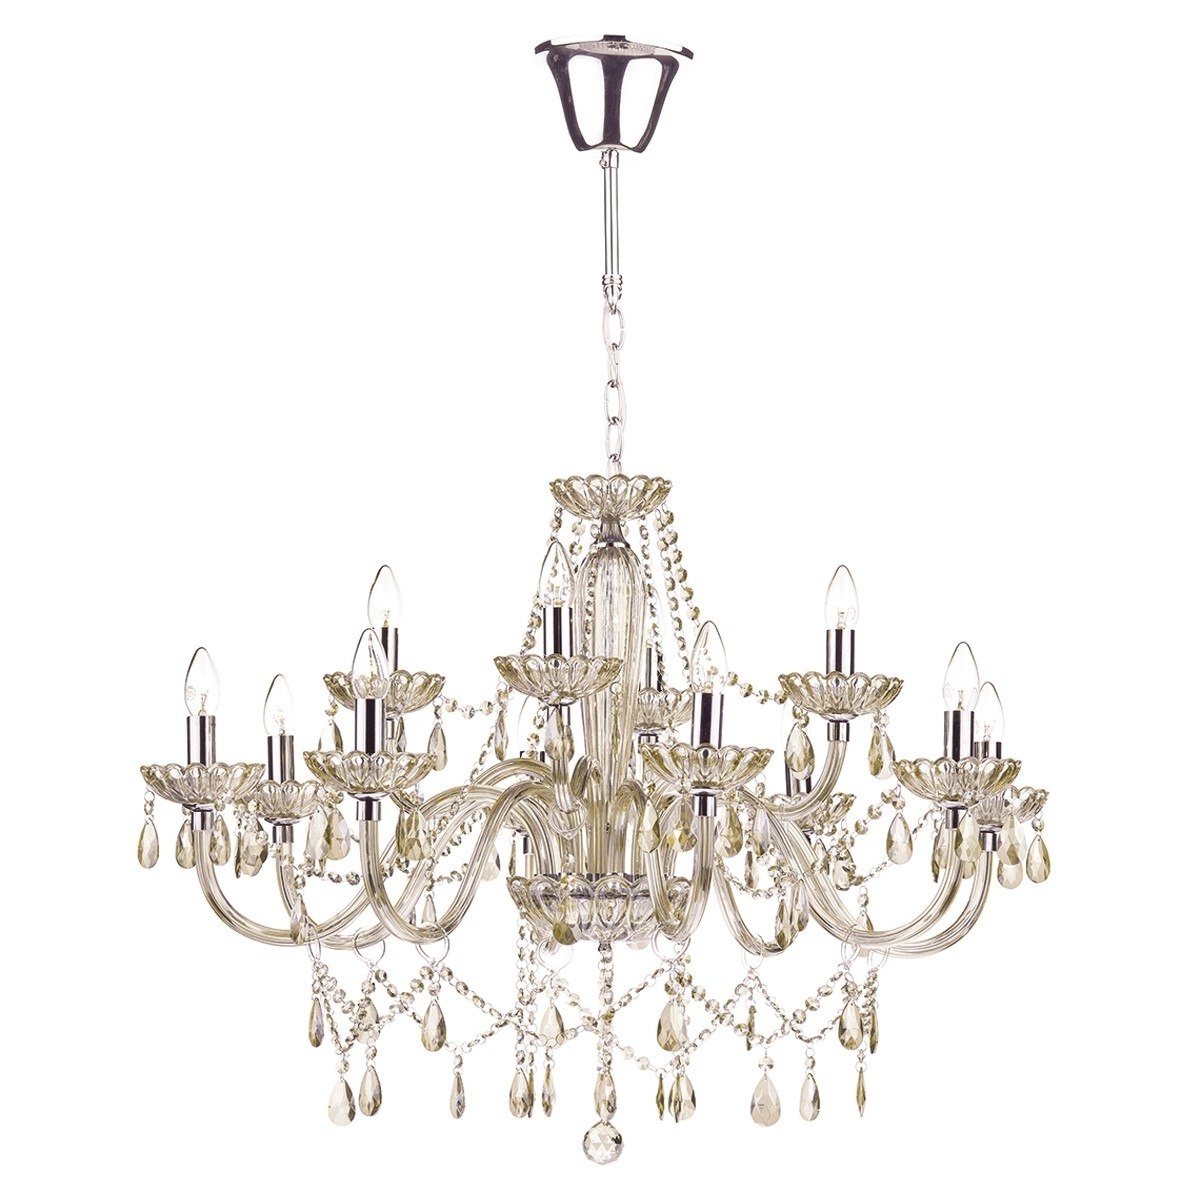 Famous Light Fitting Chandeliers Inside Chandeliers Design : Awesome Light Chandelier Capital Lighting (View 6 of 15)